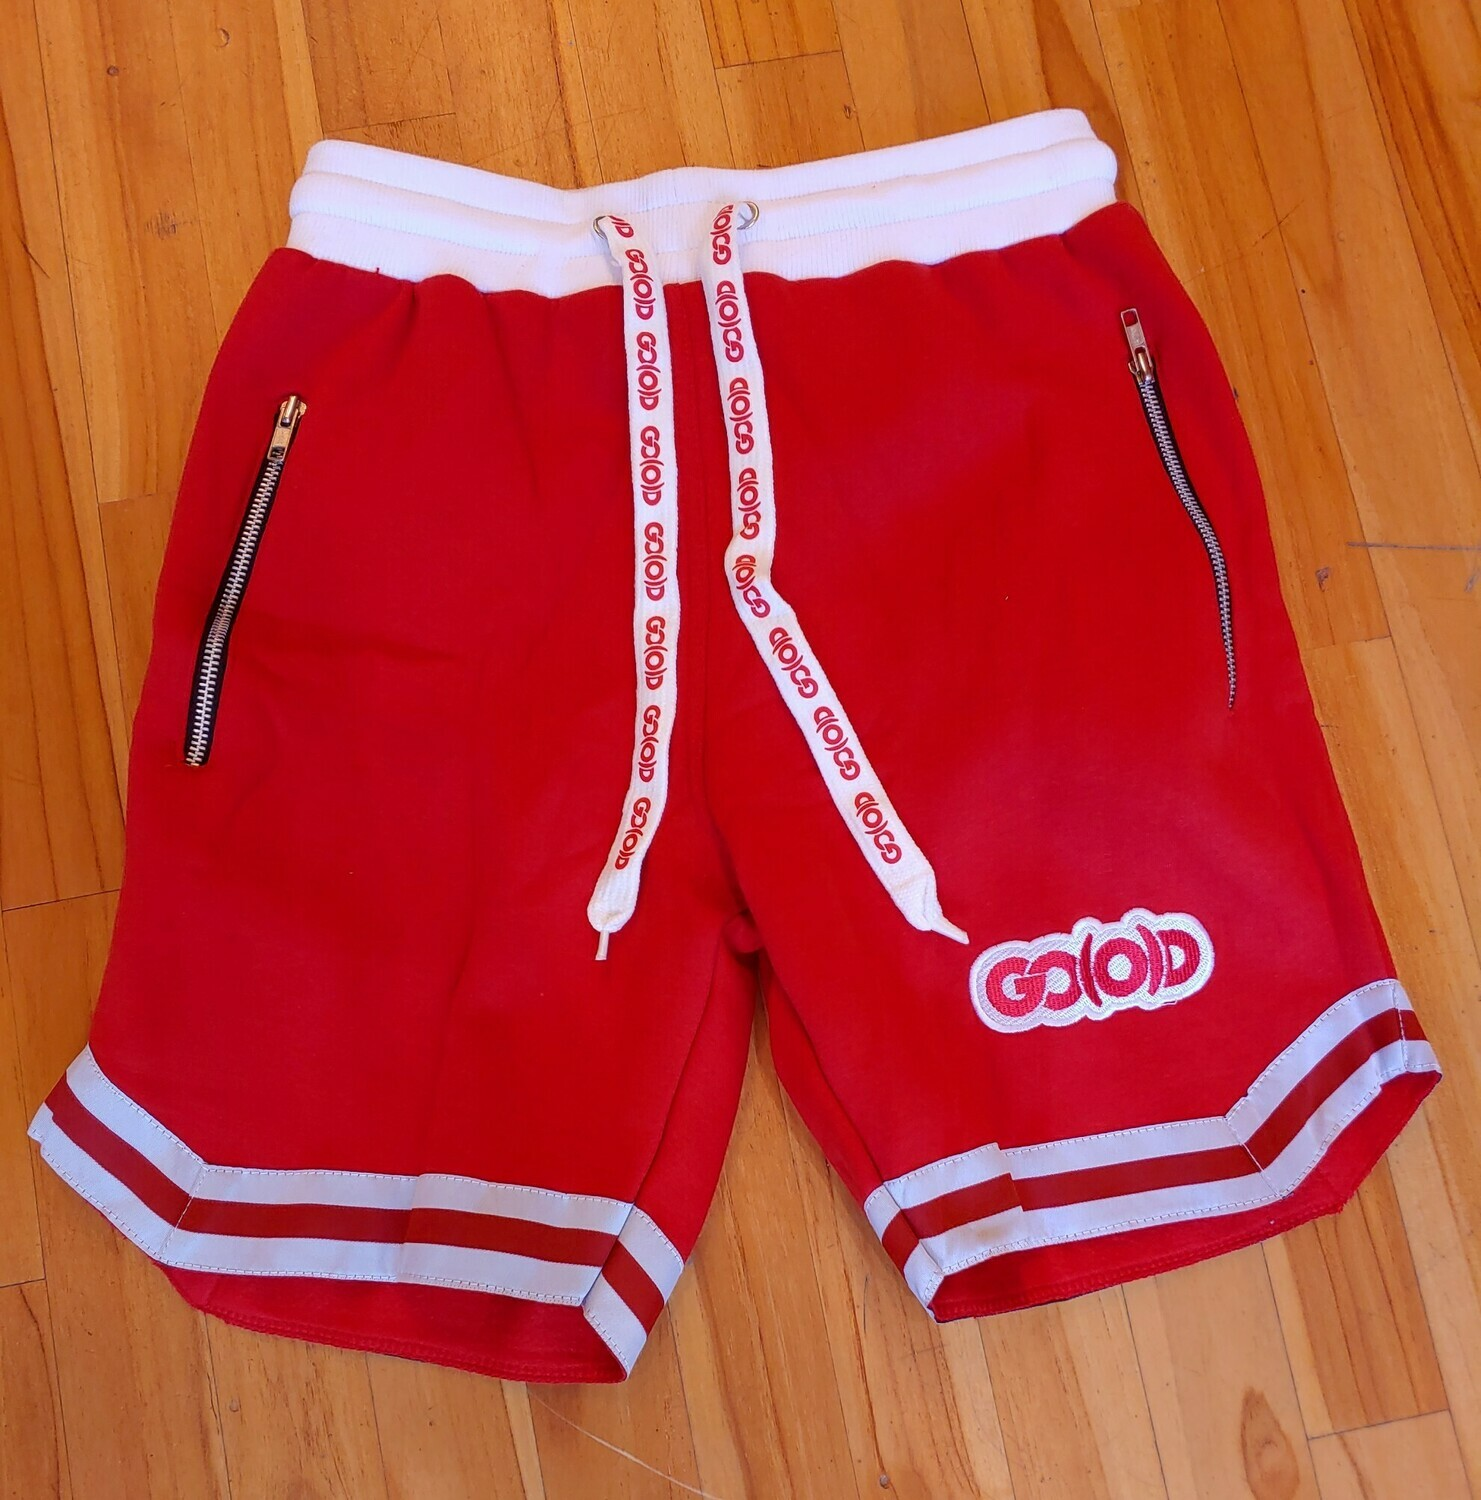 GO(O)D Wave Shorts-red/white (runs about 1 size small)